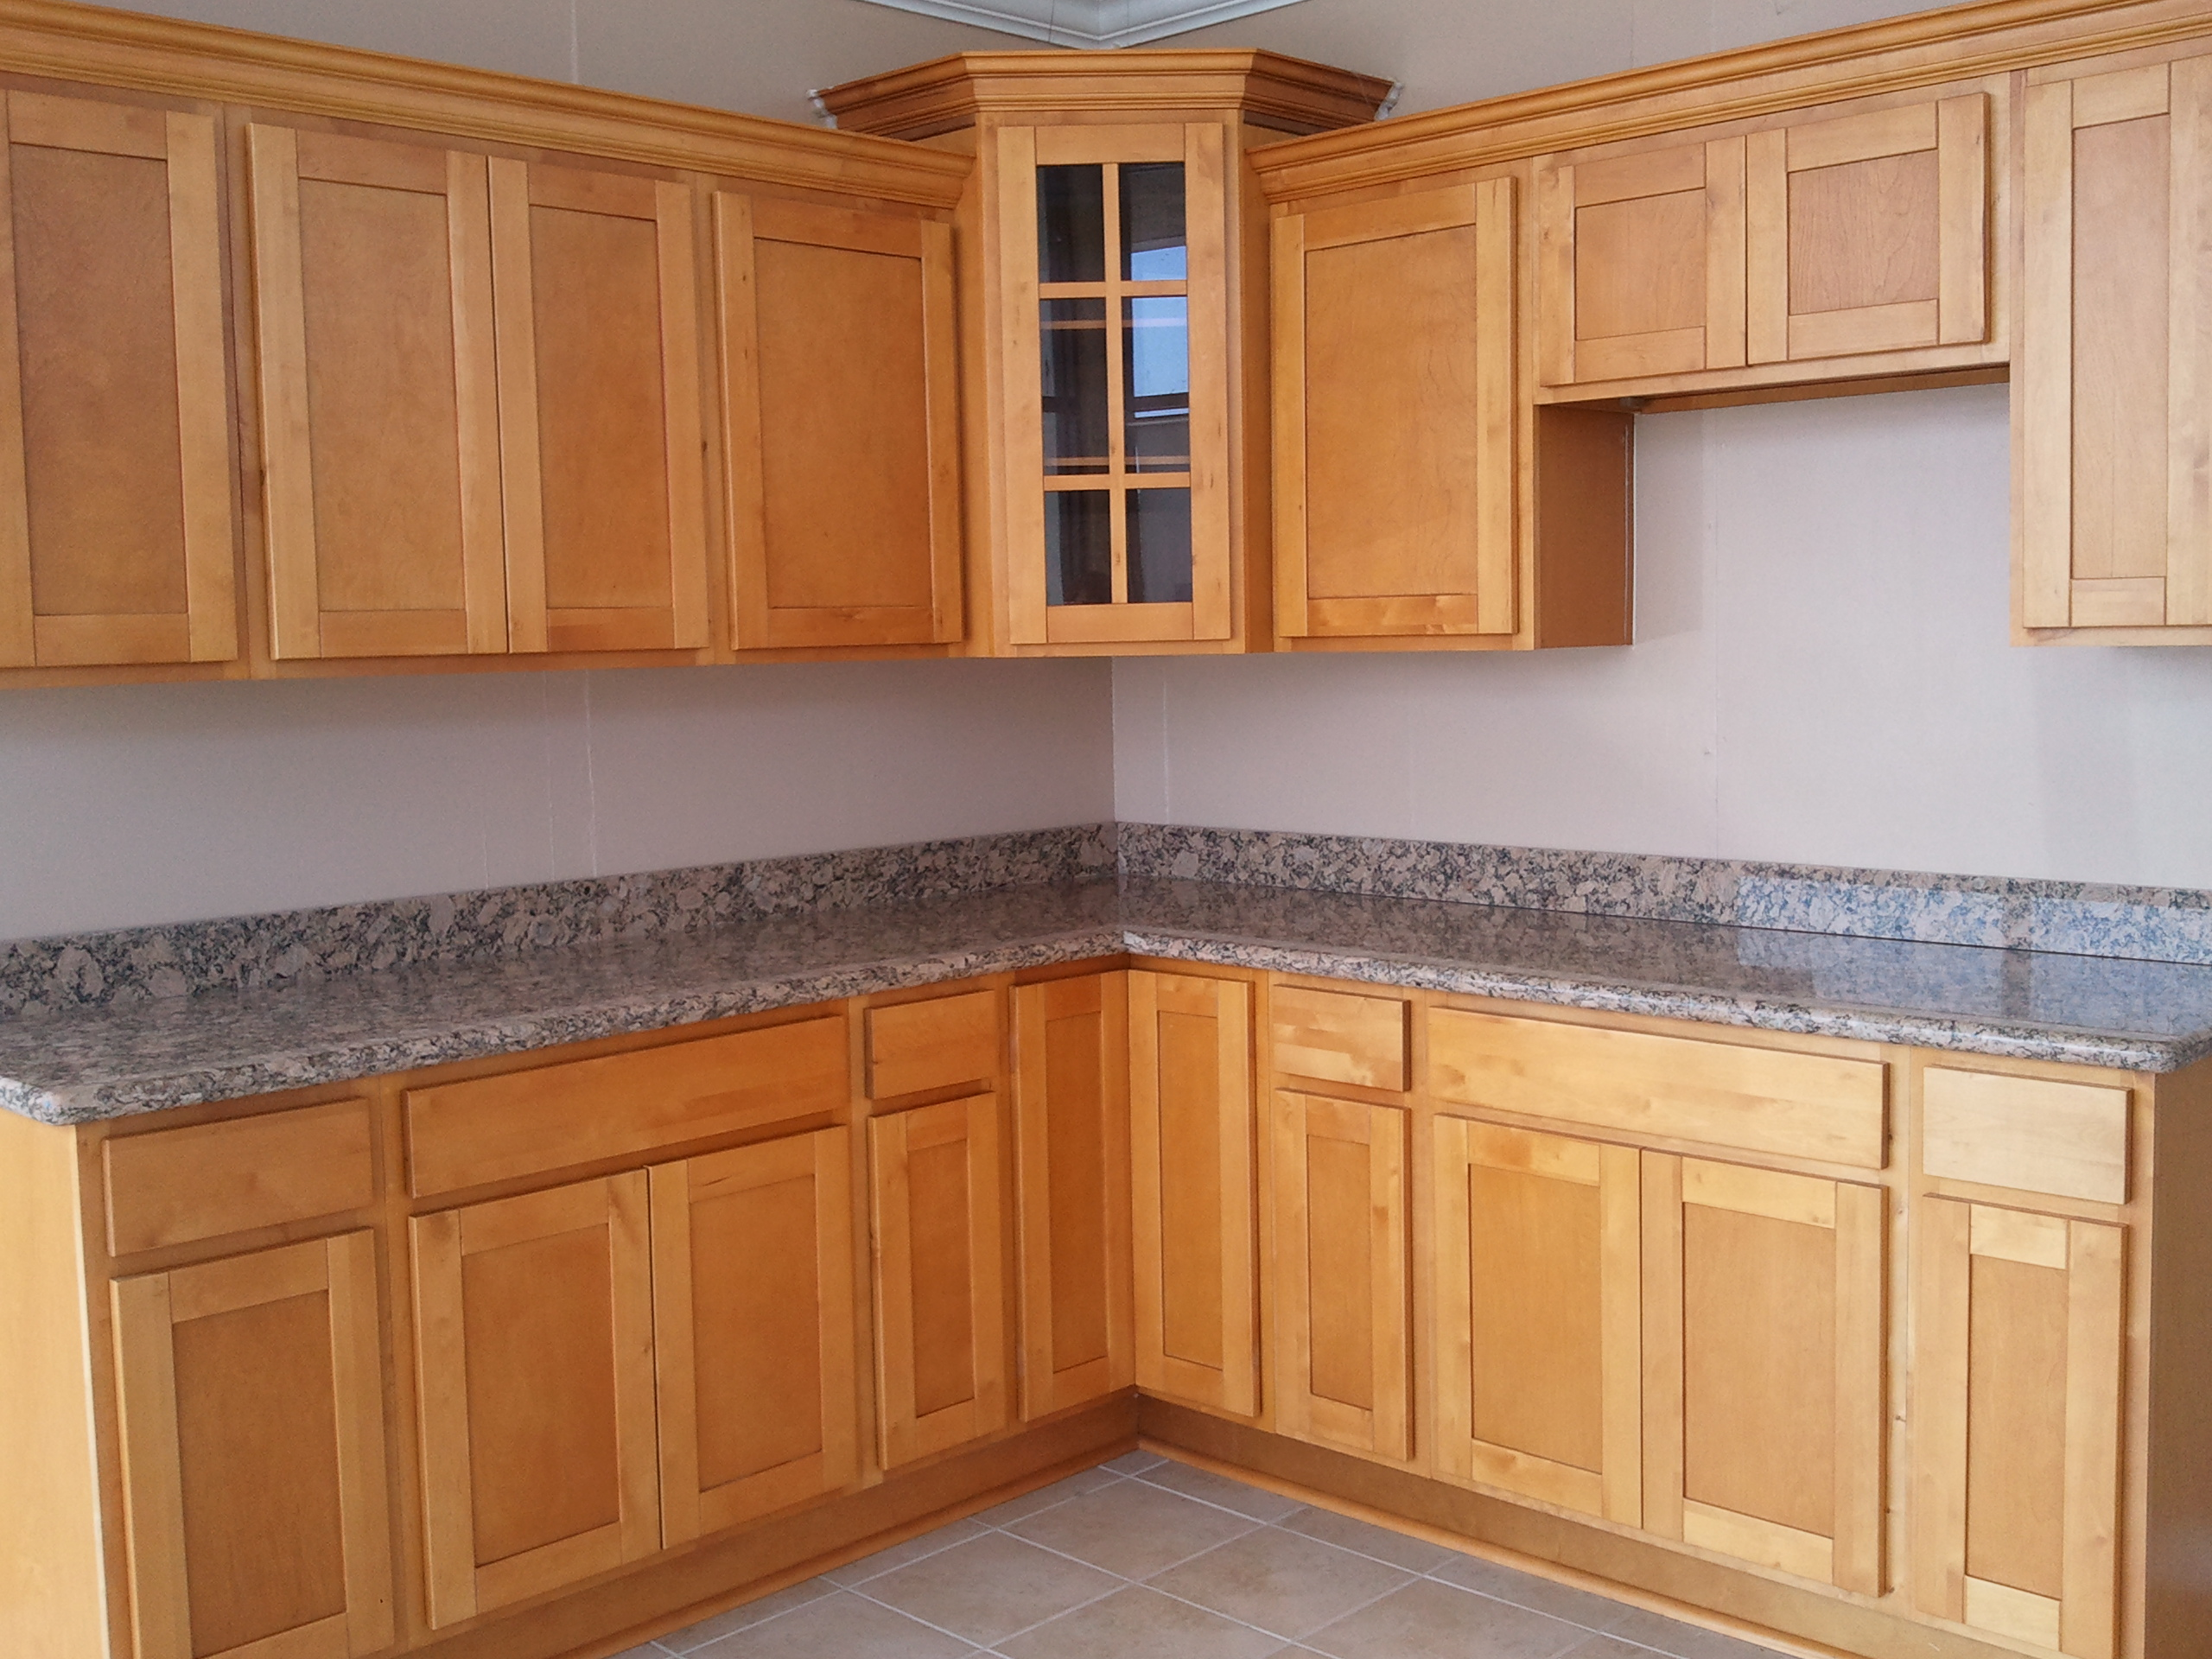 online kitchen cabinets reviews best kitchen cabinet reviews image to u 24047